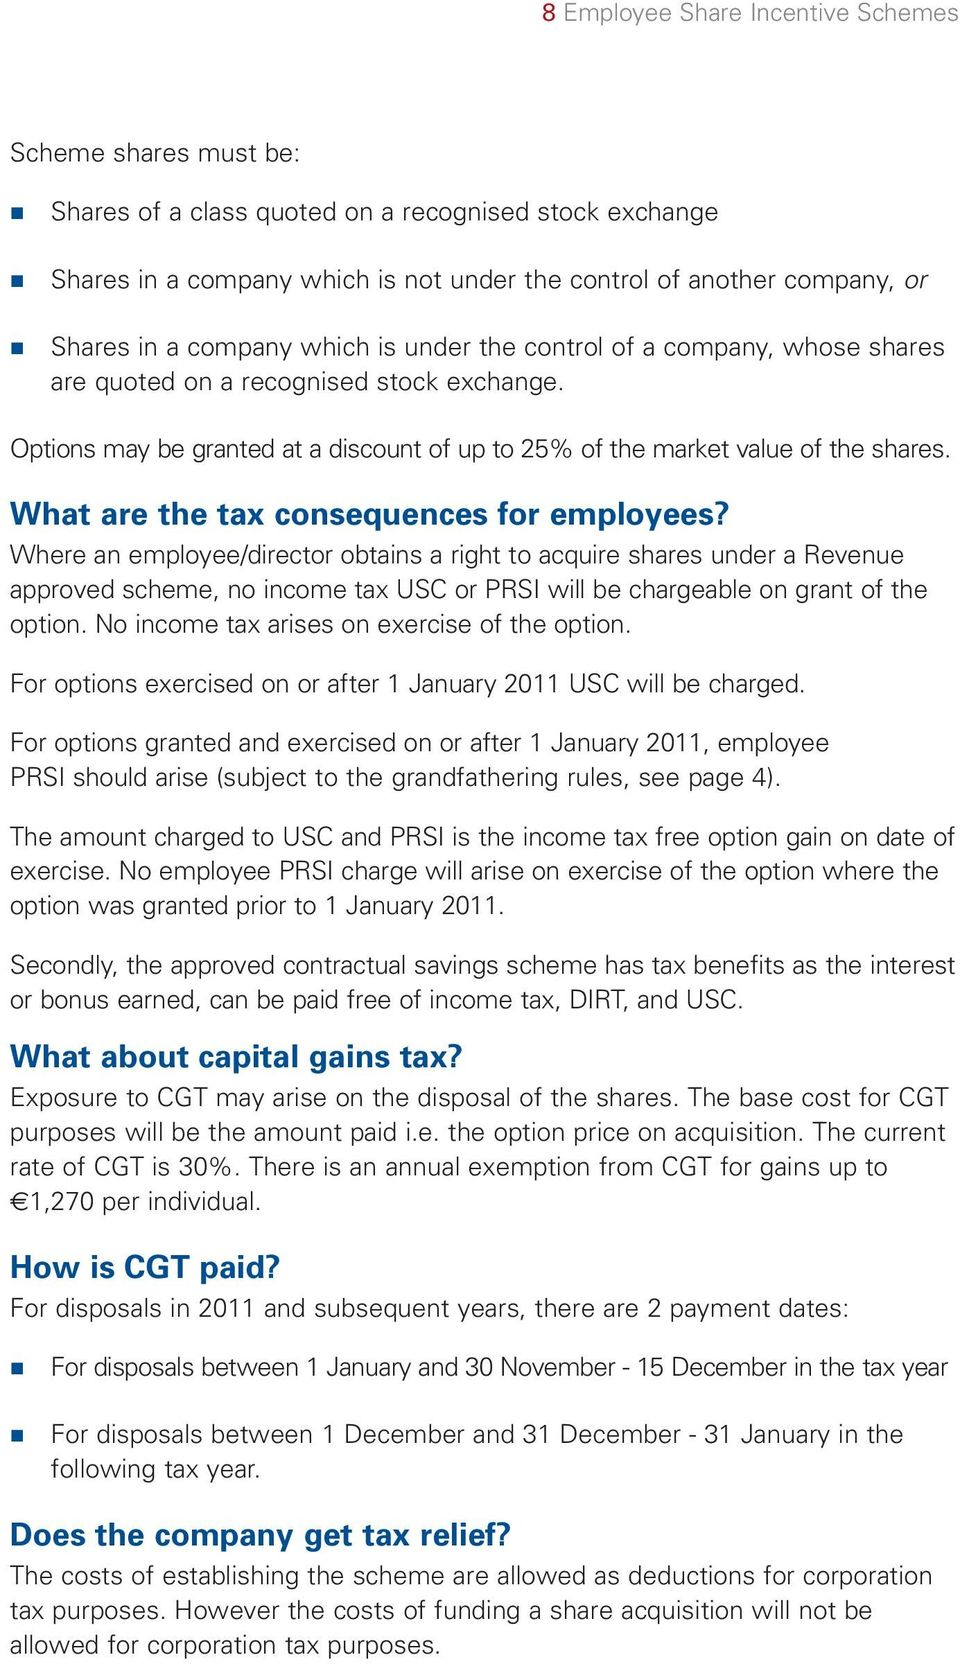 What are the tax consequences for employees?